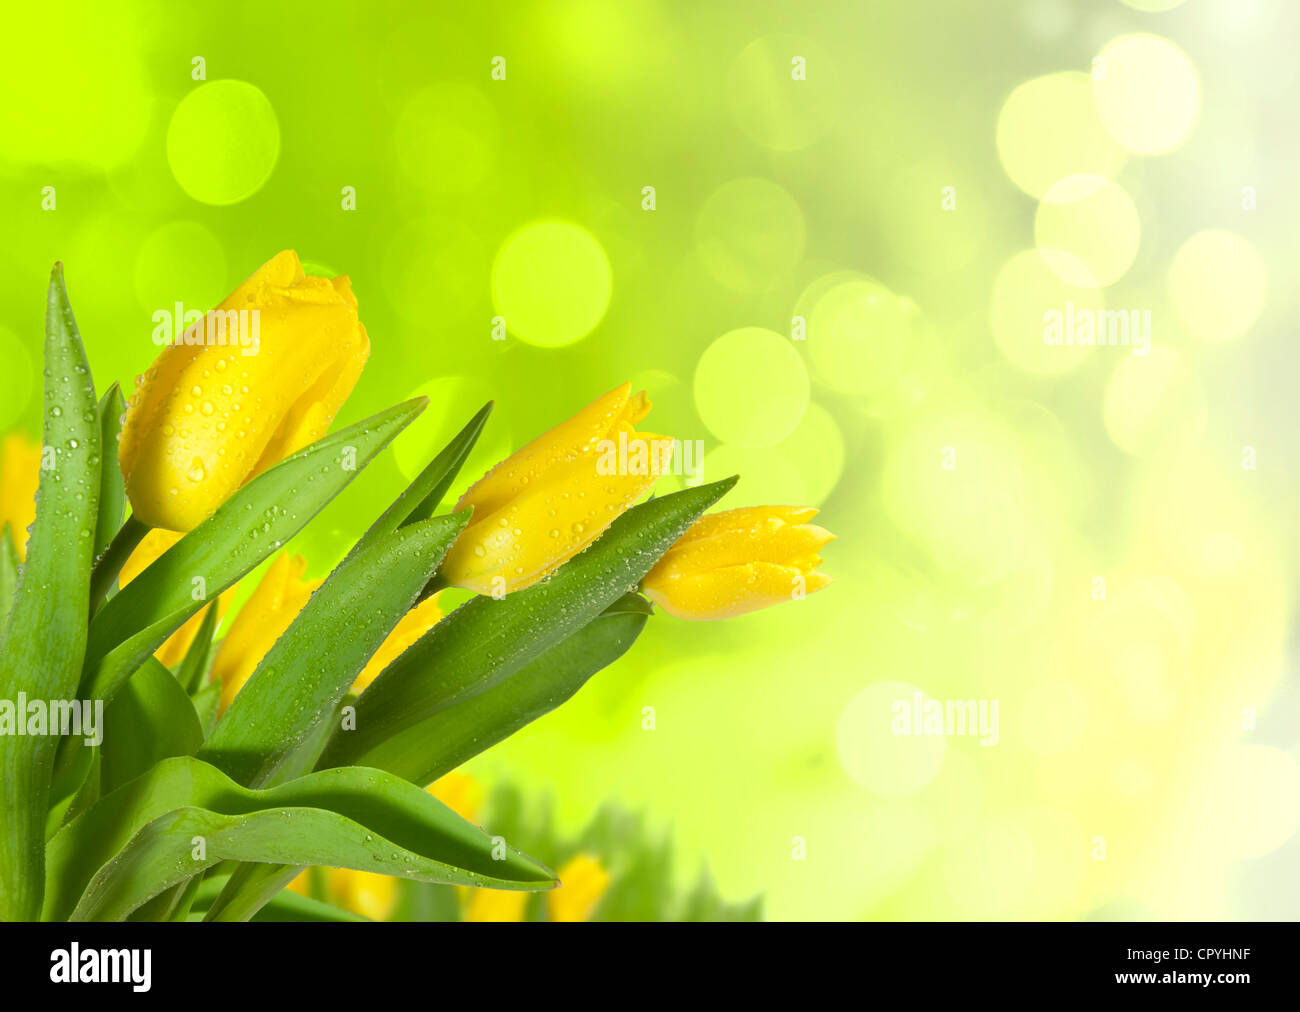 Spring tulips on blur background - Stock Image